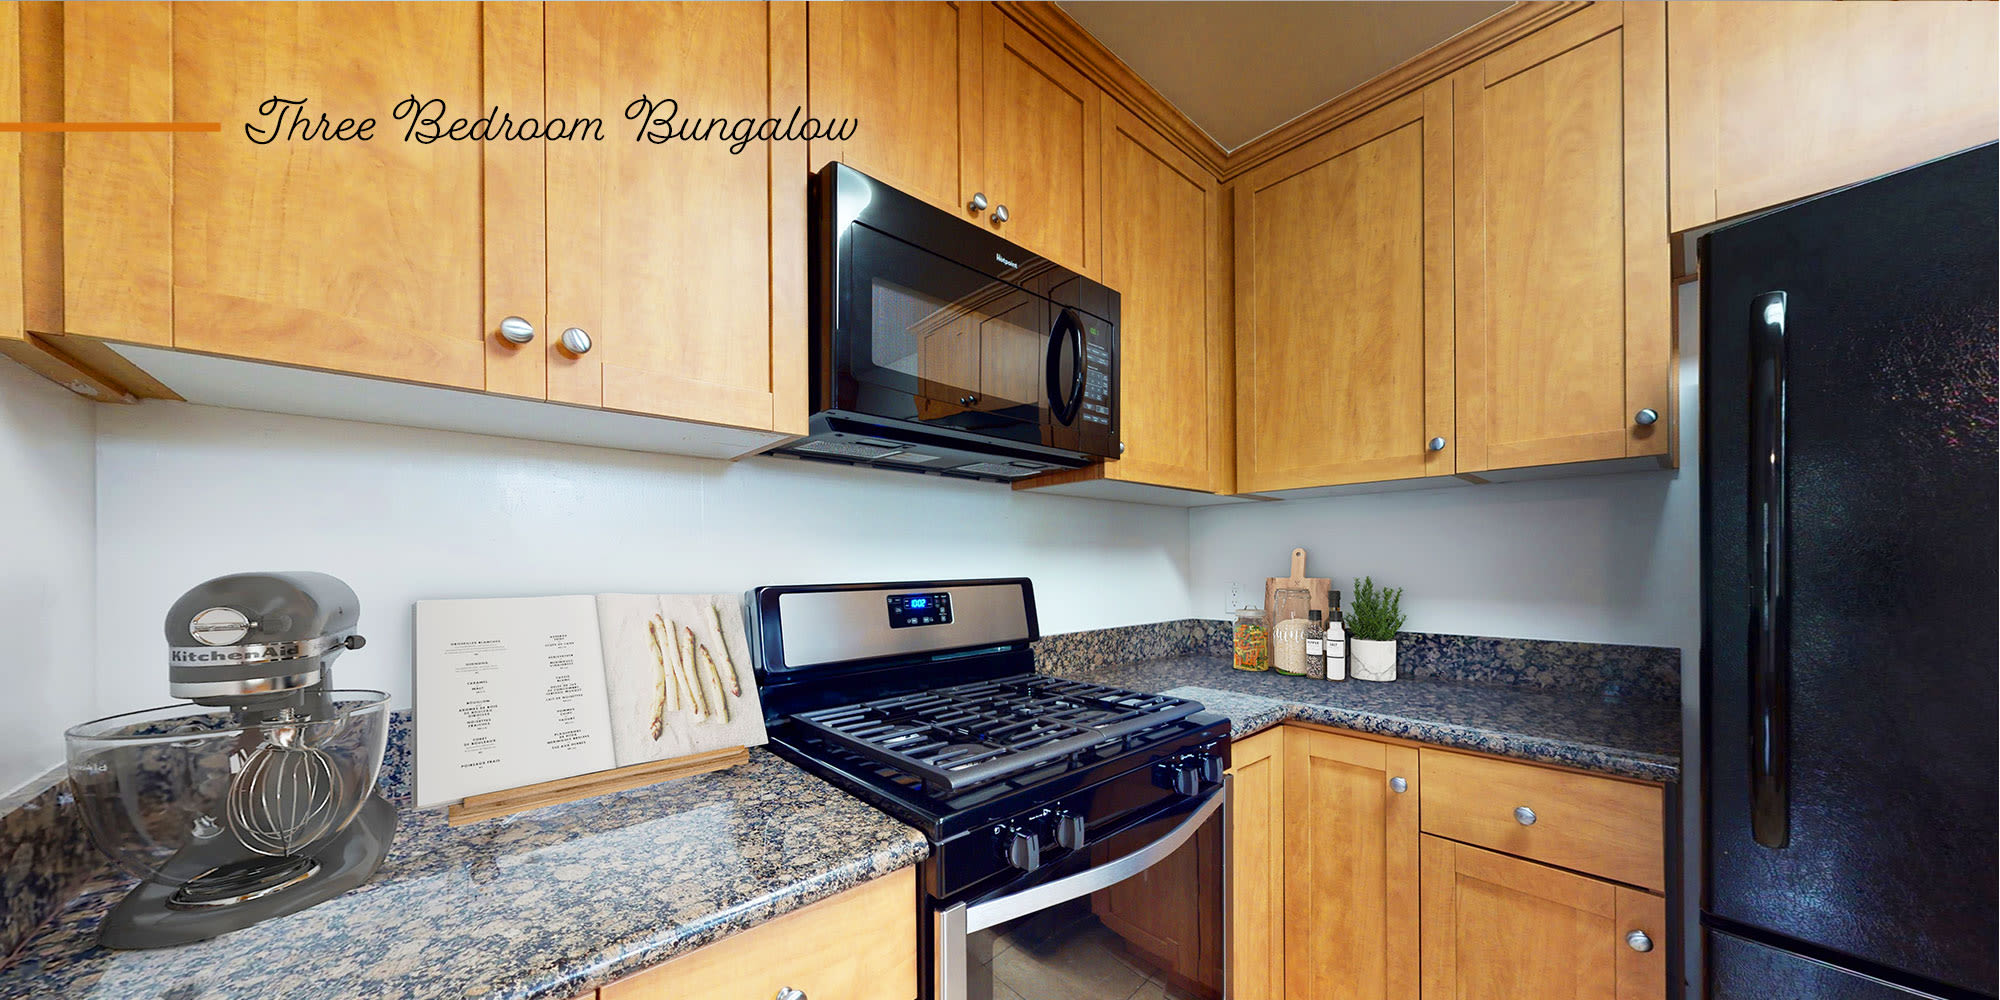 Kitchen in a bungalow-style apartment at Sunset Barrington Gardens in Los Angeles, California